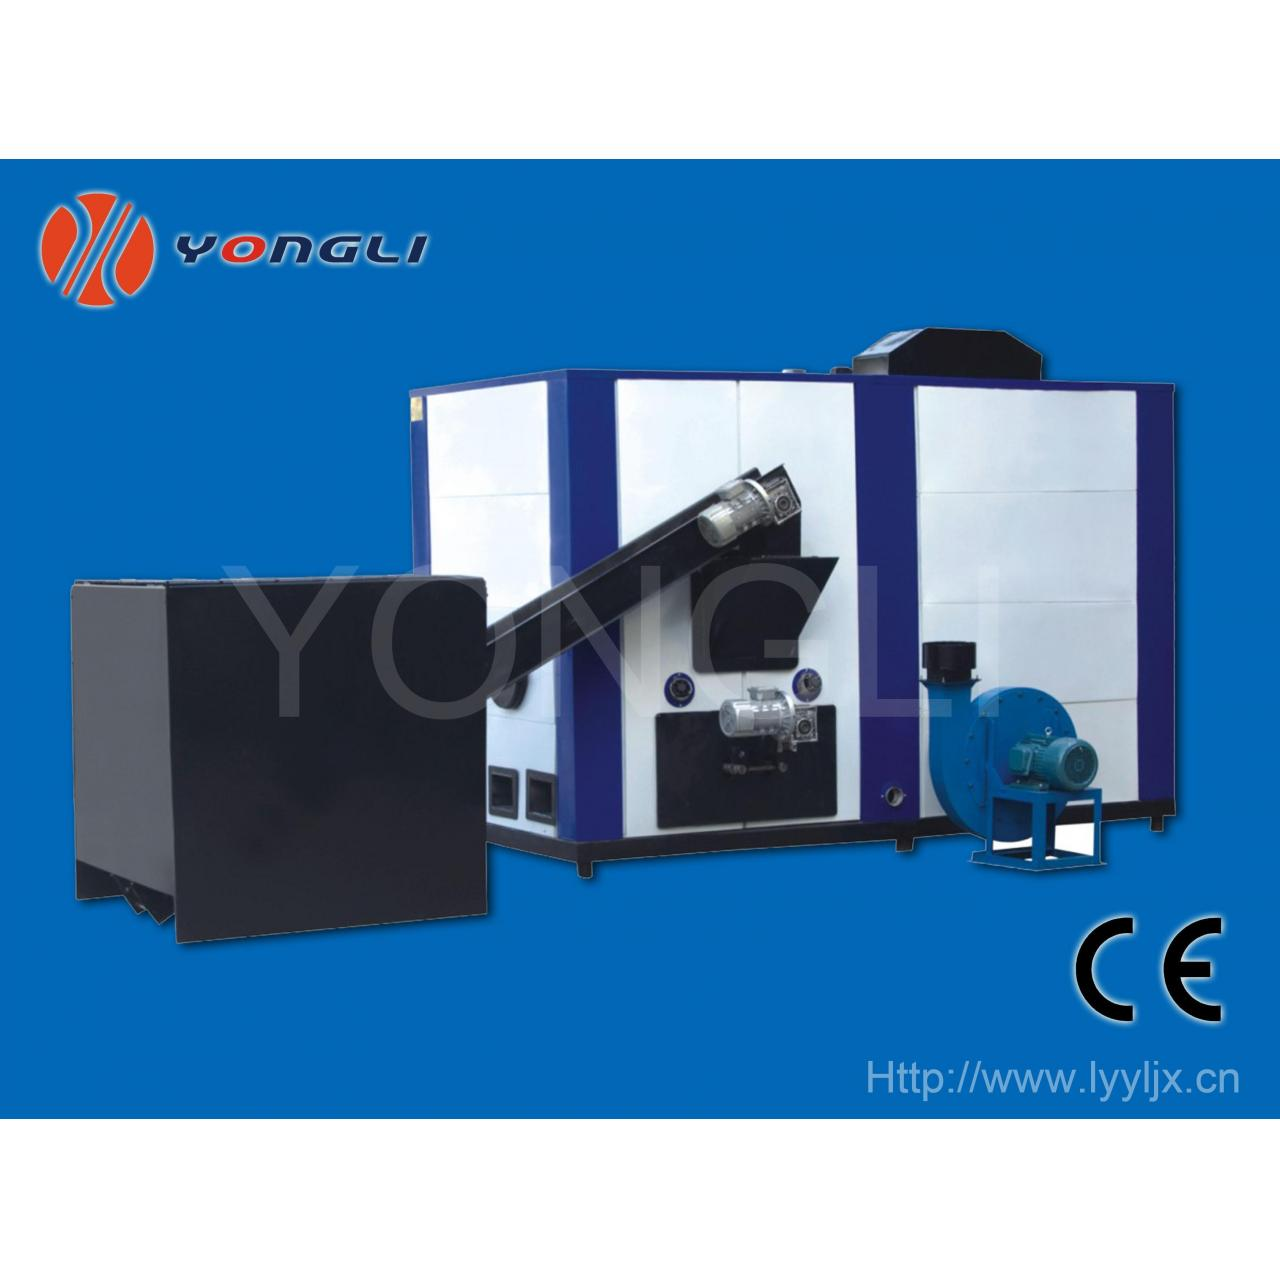 E-1 series automatic straw pellet boiler for sale